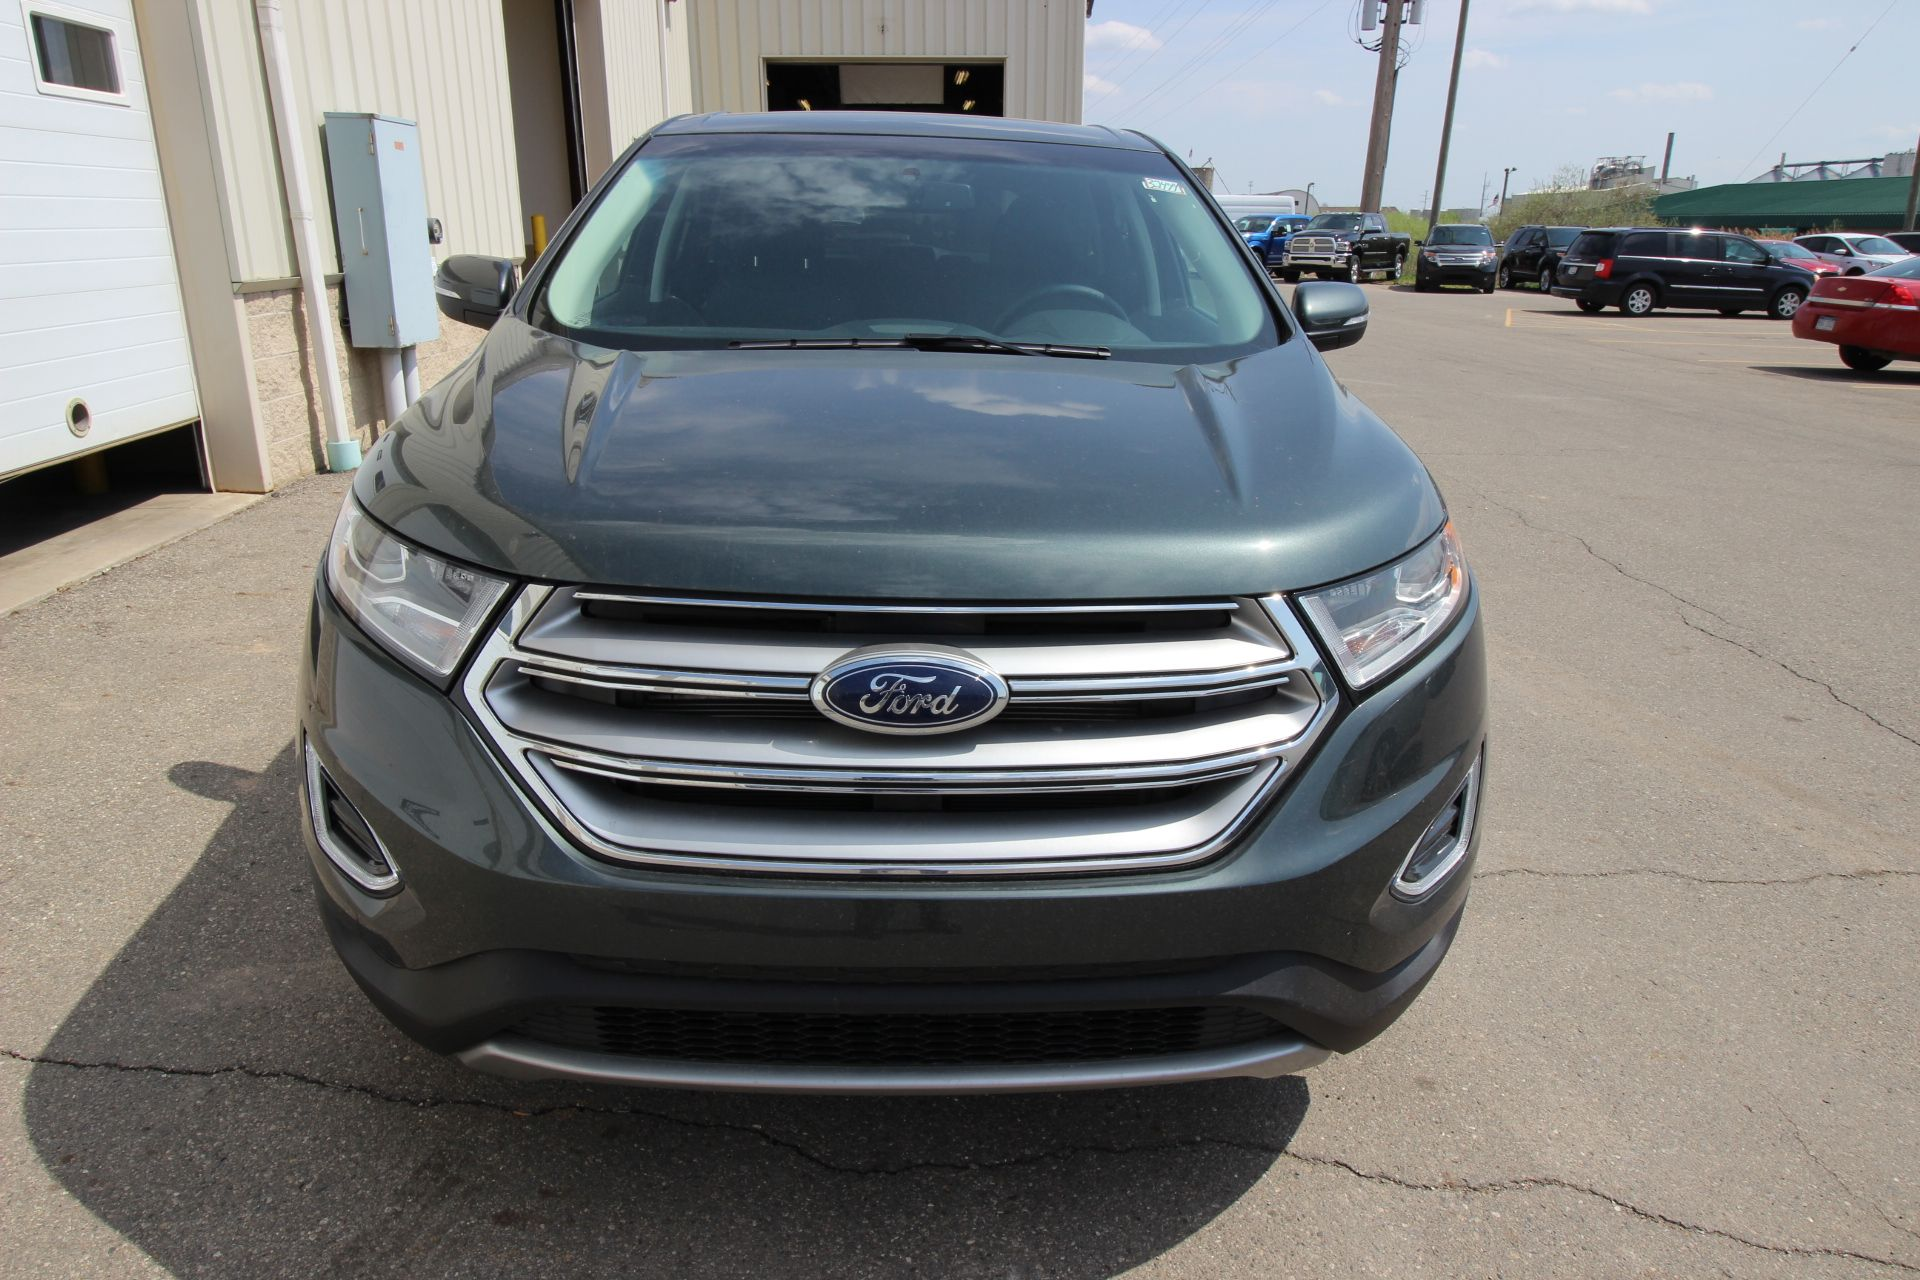 2015 ford edge with a guard exterior color